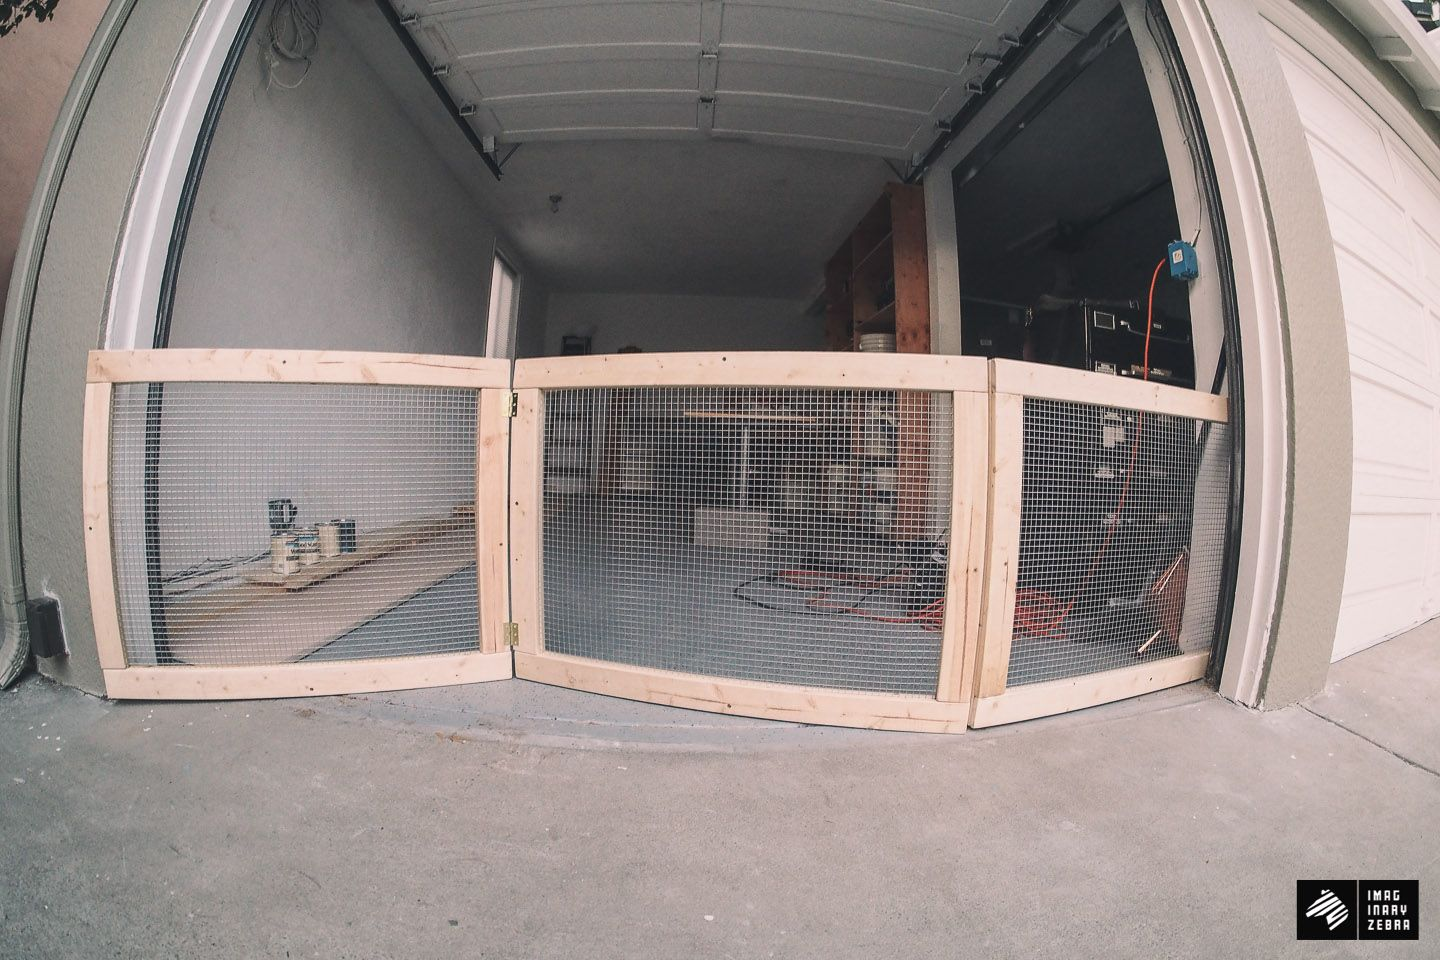 Merveilleux My Man Cave Part 1u2014DIY Dog Fence For Garage Doors U2014 Imaginary Zebra™ // IZ™